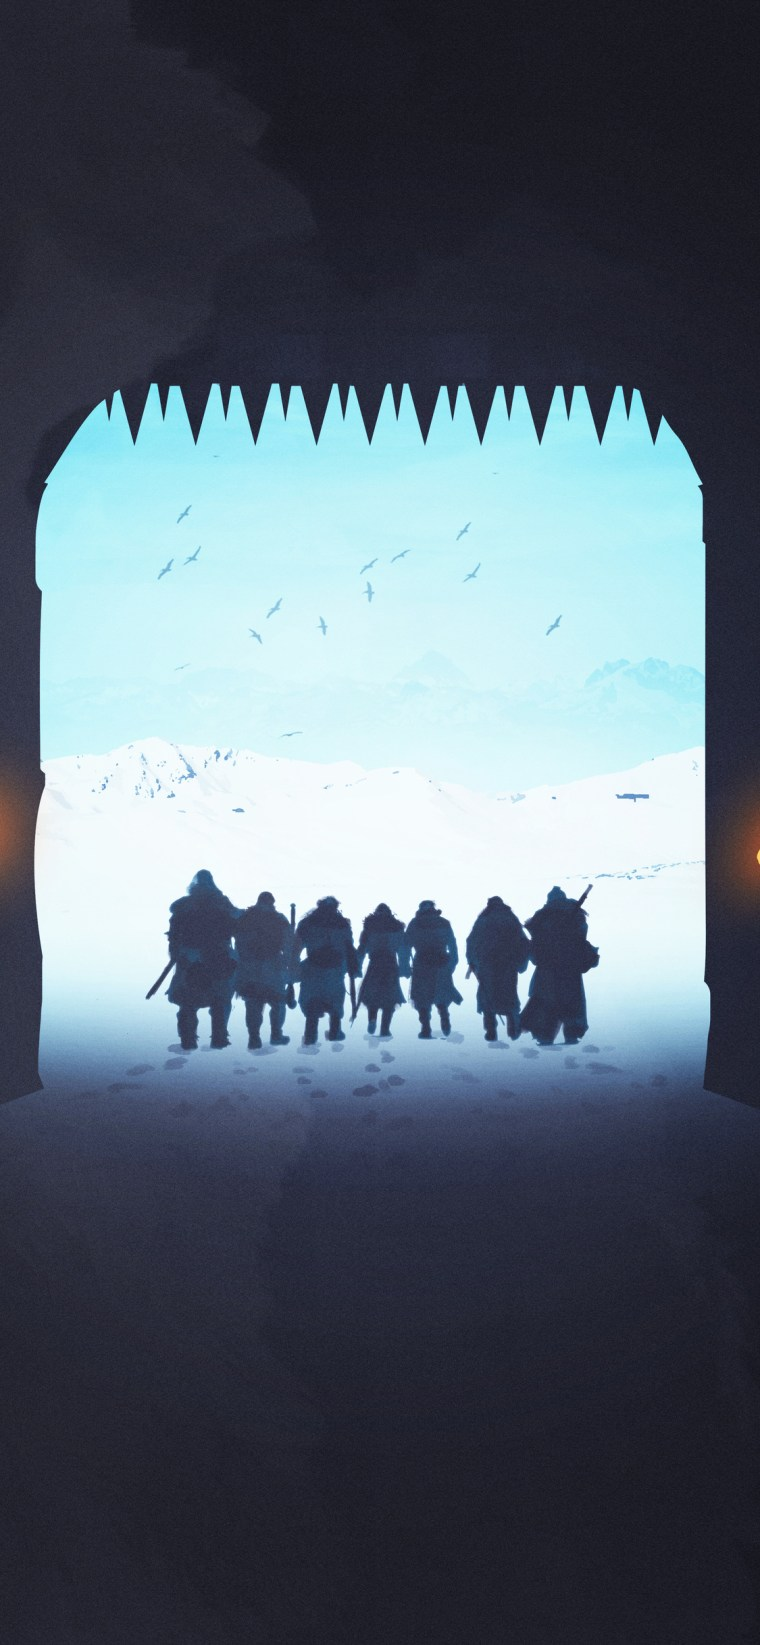 game-of-thrones-night-watch-the-wall iPhone game of thrones wallpaper